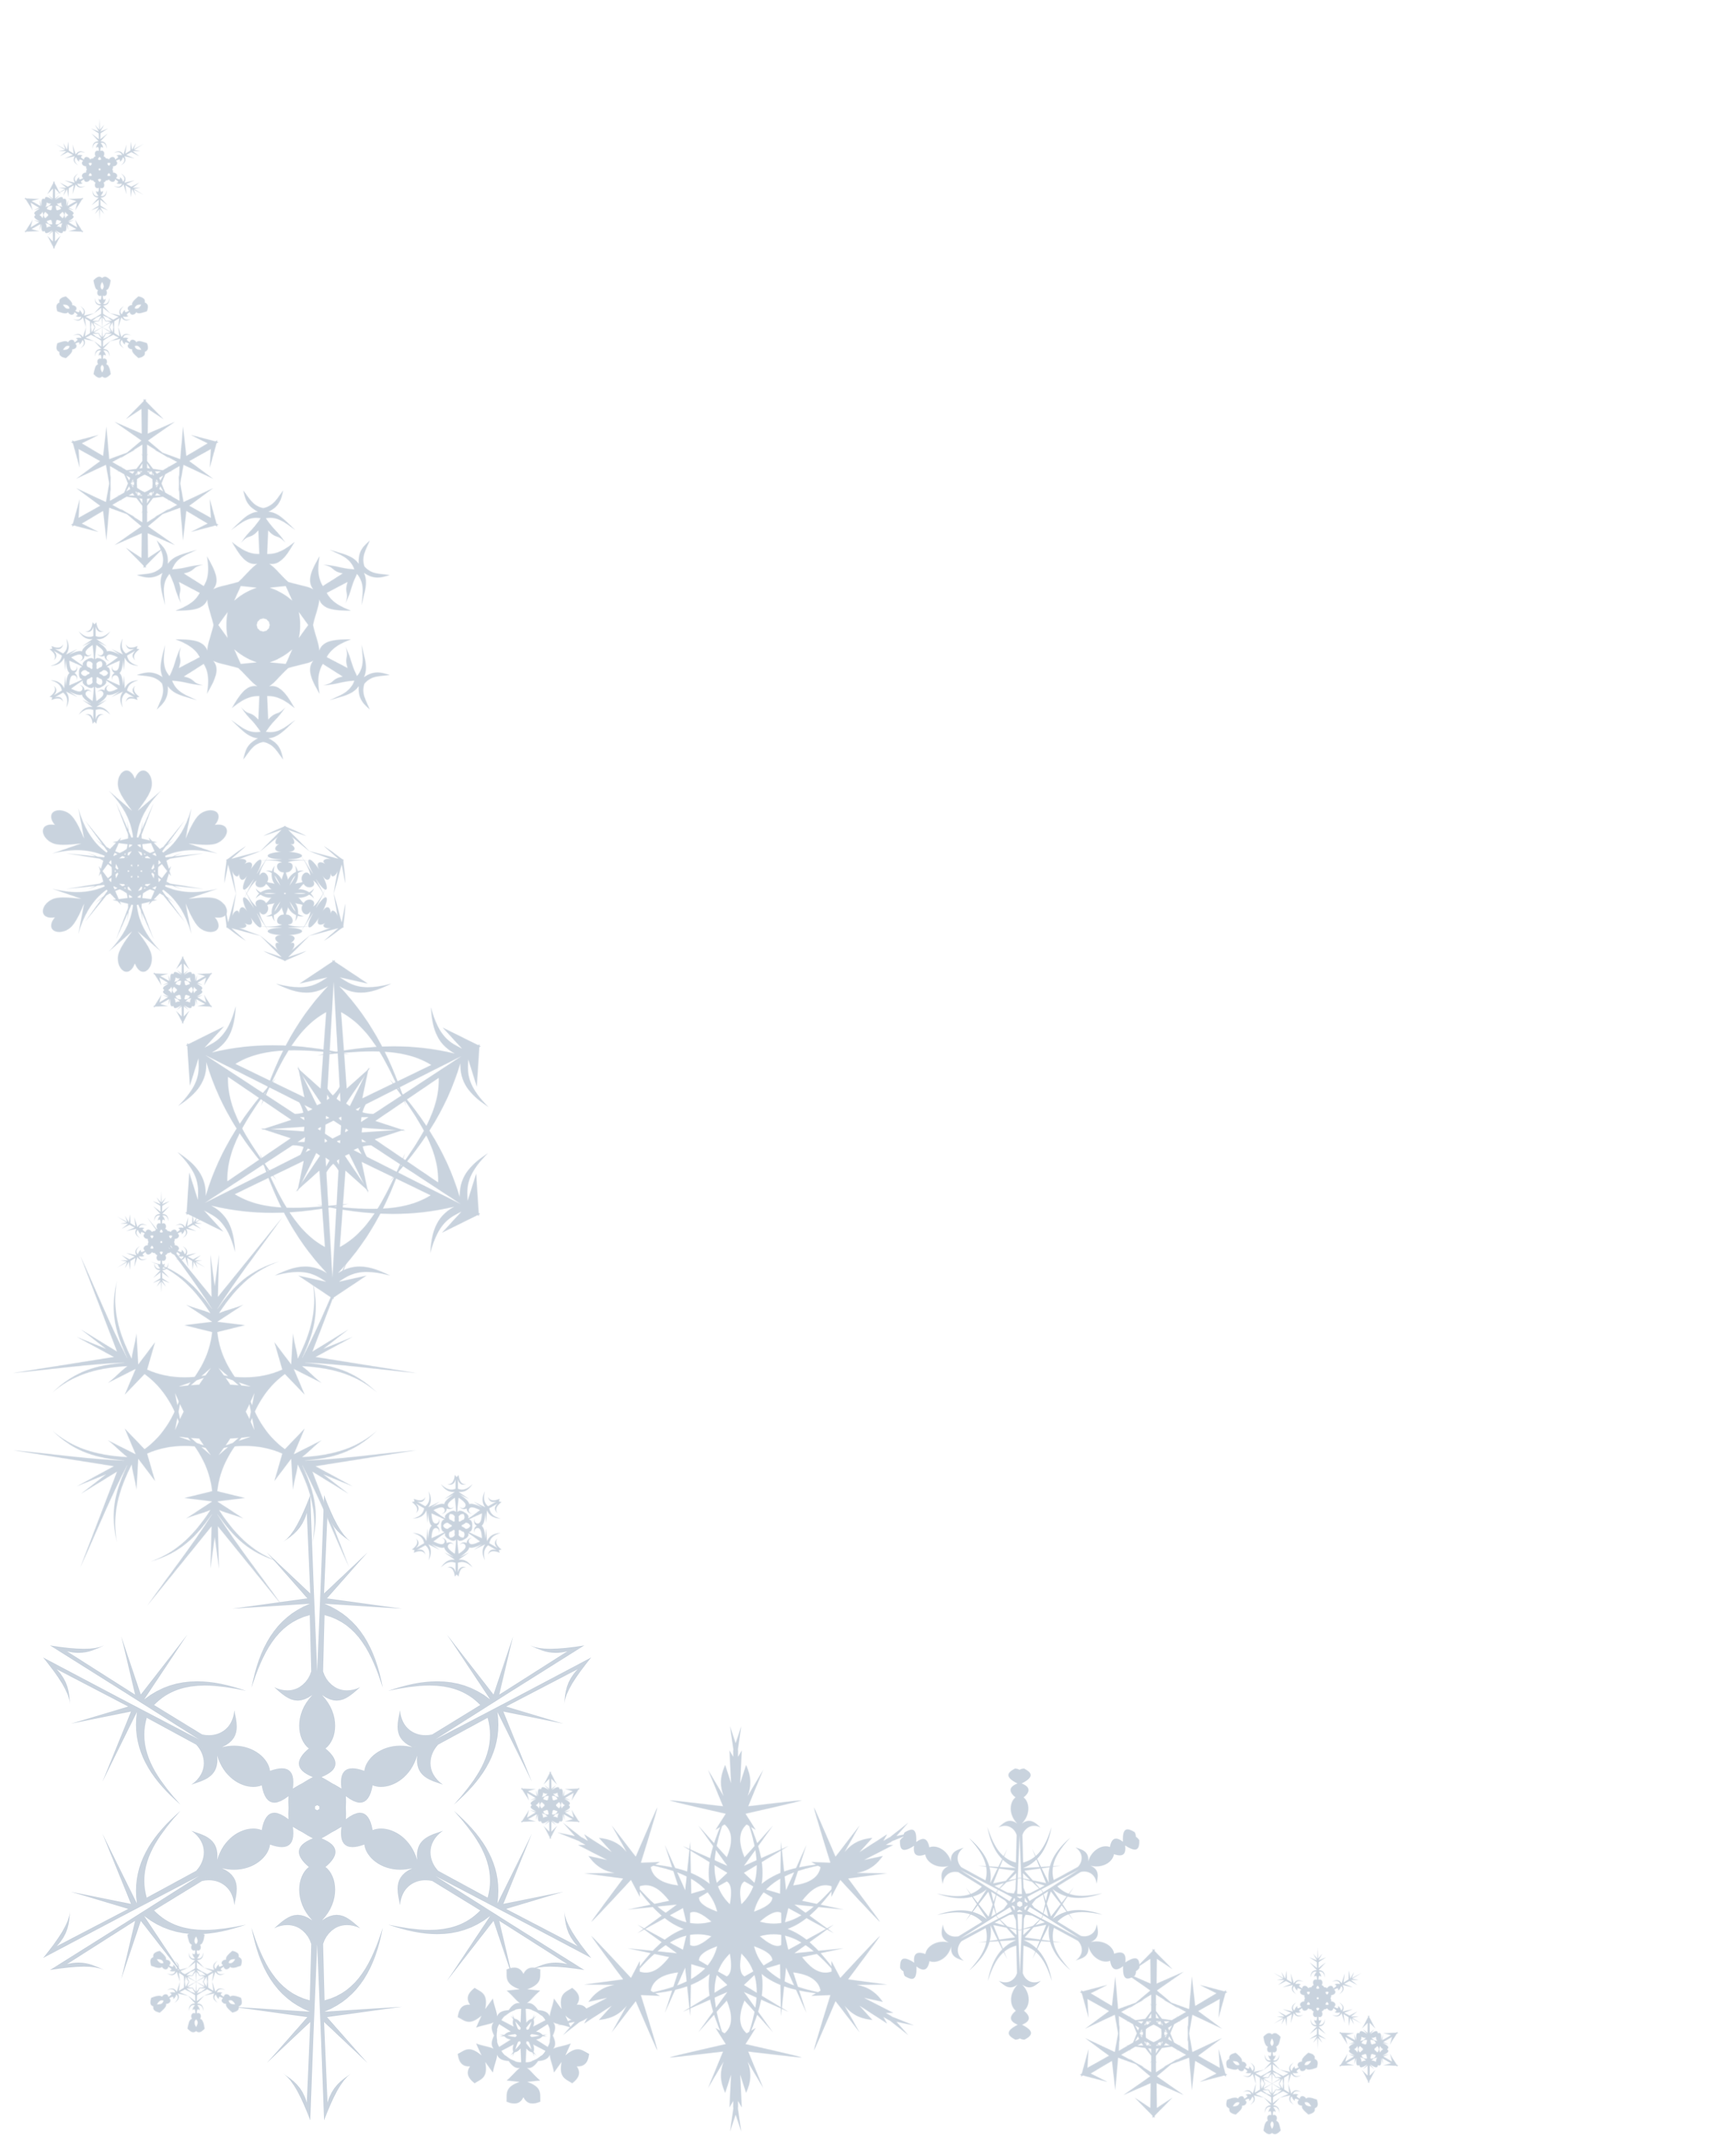 Snowman border clipart free clip royalty free library Free Snowflake Corner Cliparts, Download Free Clip Art, Free ... clip royalty free library